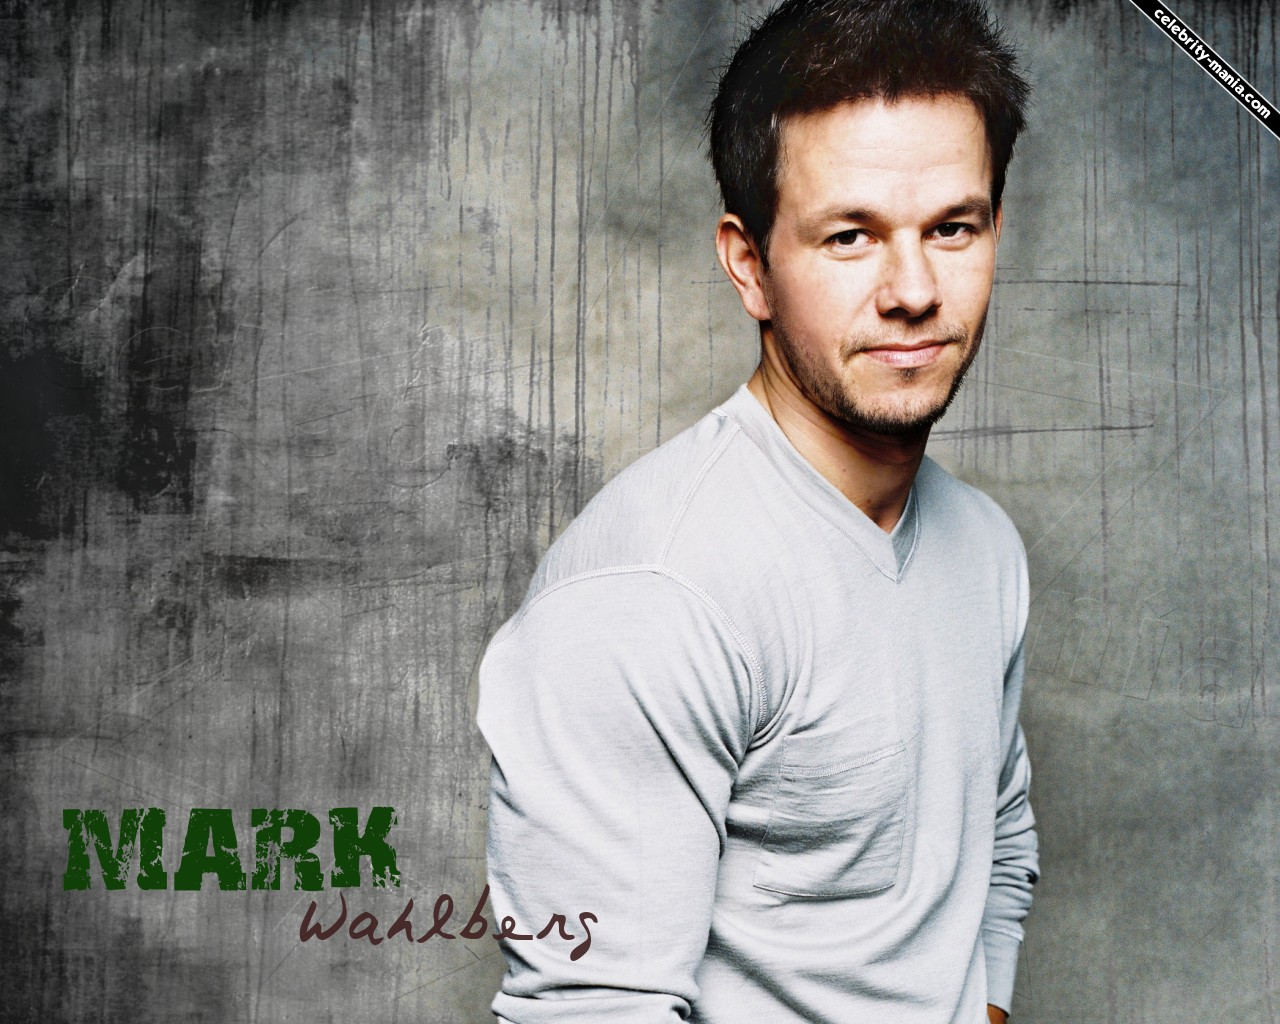 http://1.bp.blogspot.com/-F59m9UU9UVo/TwLxz_LVZeI/AAAAAAAABRI/BMN6fPHGSKI/s1600/mark-wahlberg-background-2-739316.jpg